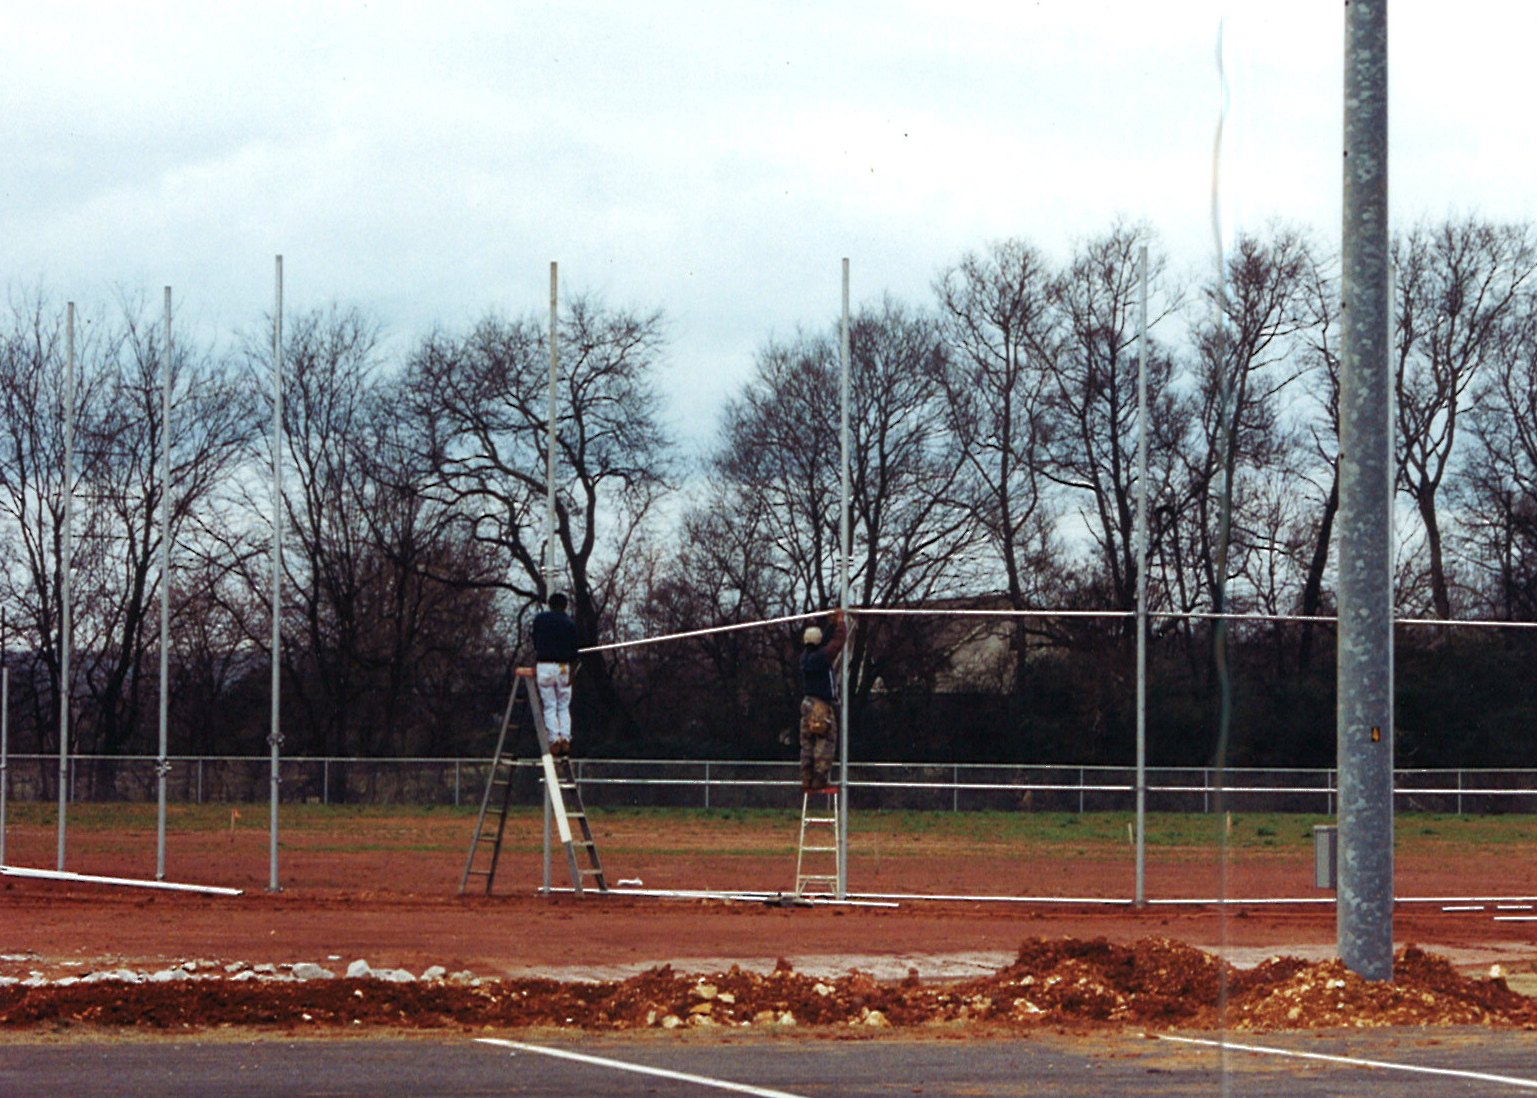 Building the ball field